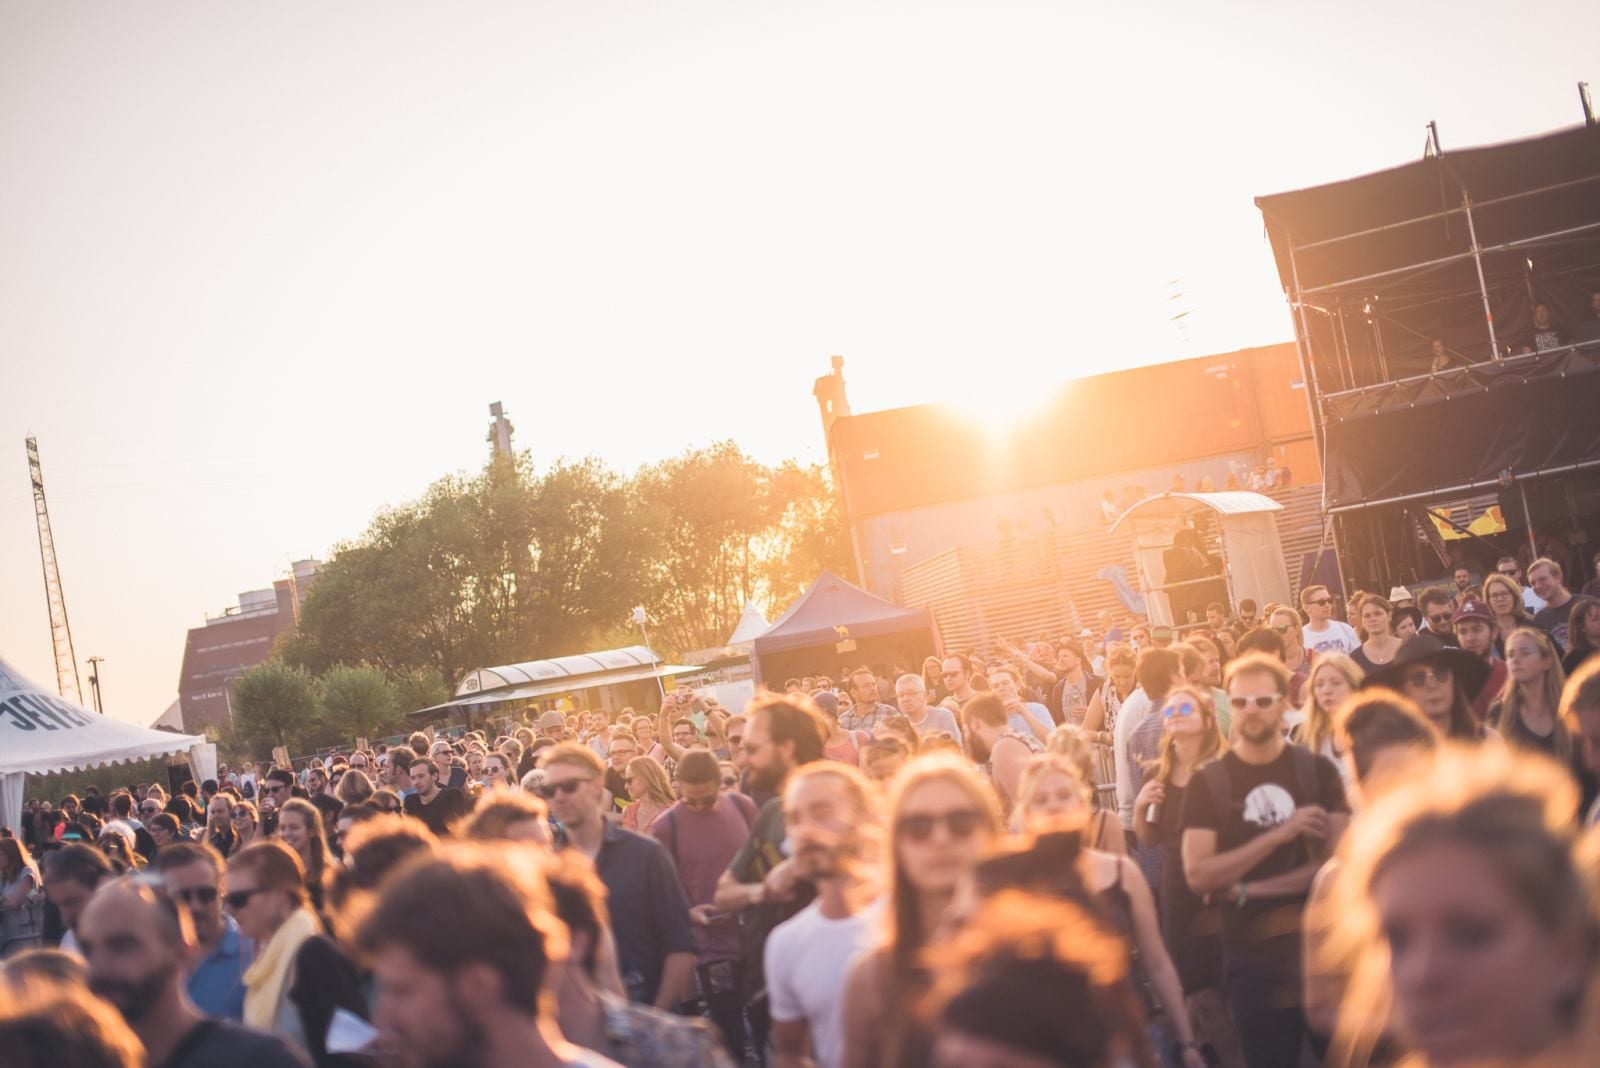 024 ms dockville 2015 crowd - MS Dockville 2015